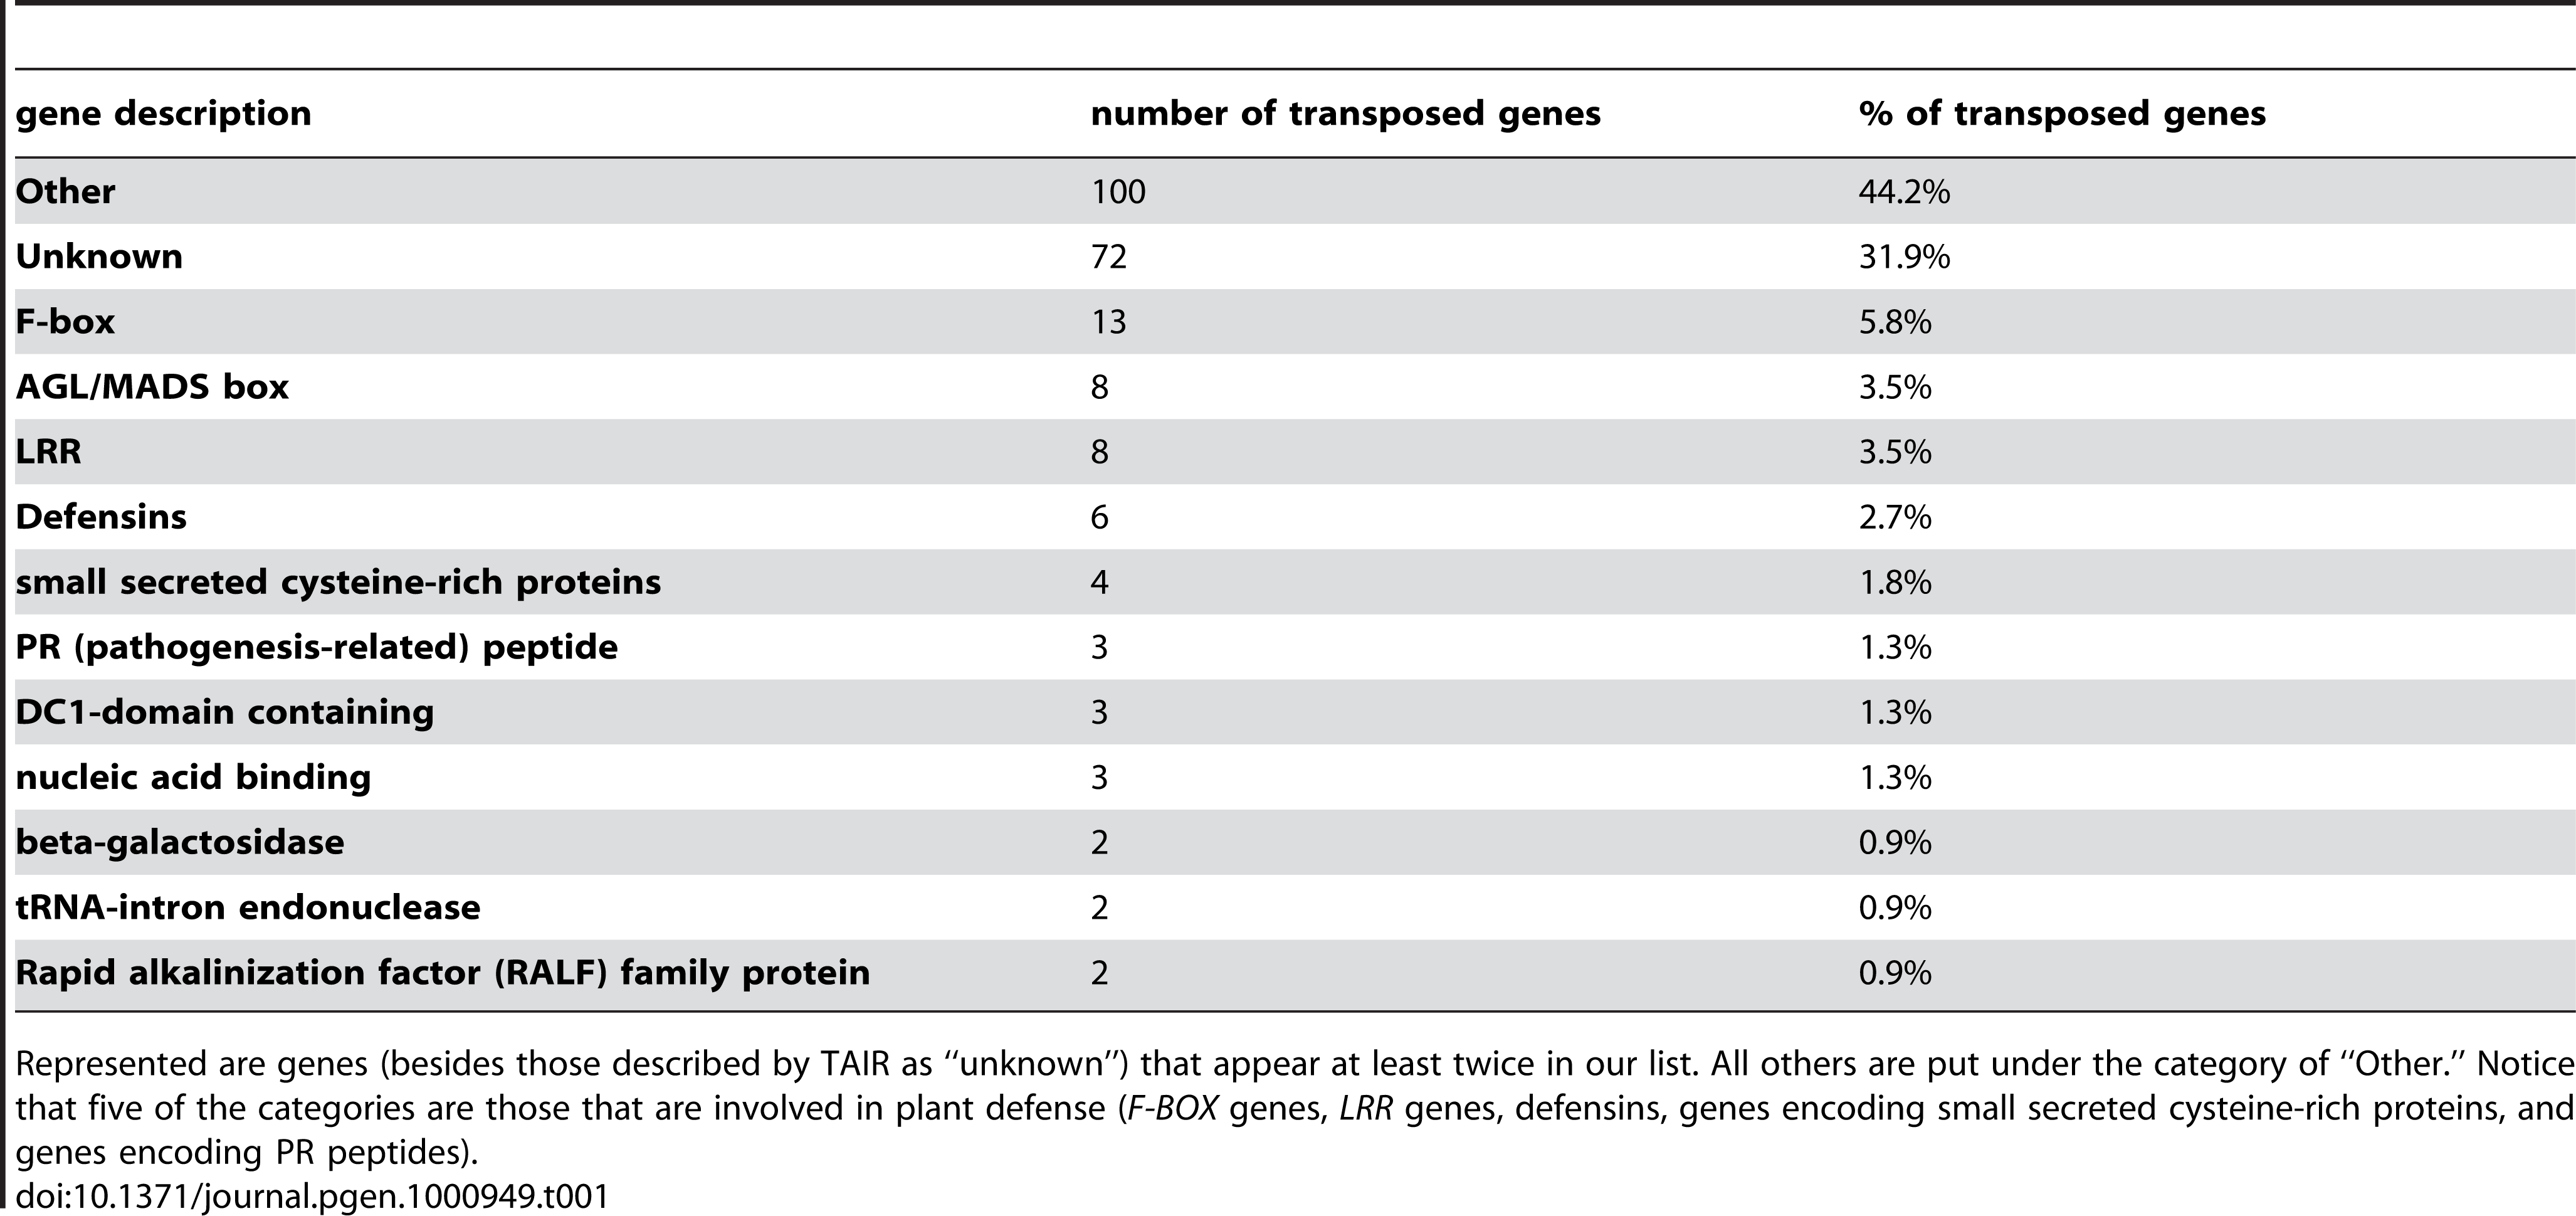 The 226 transposed genes in <i>A. thaliana</i> and their familial categories.